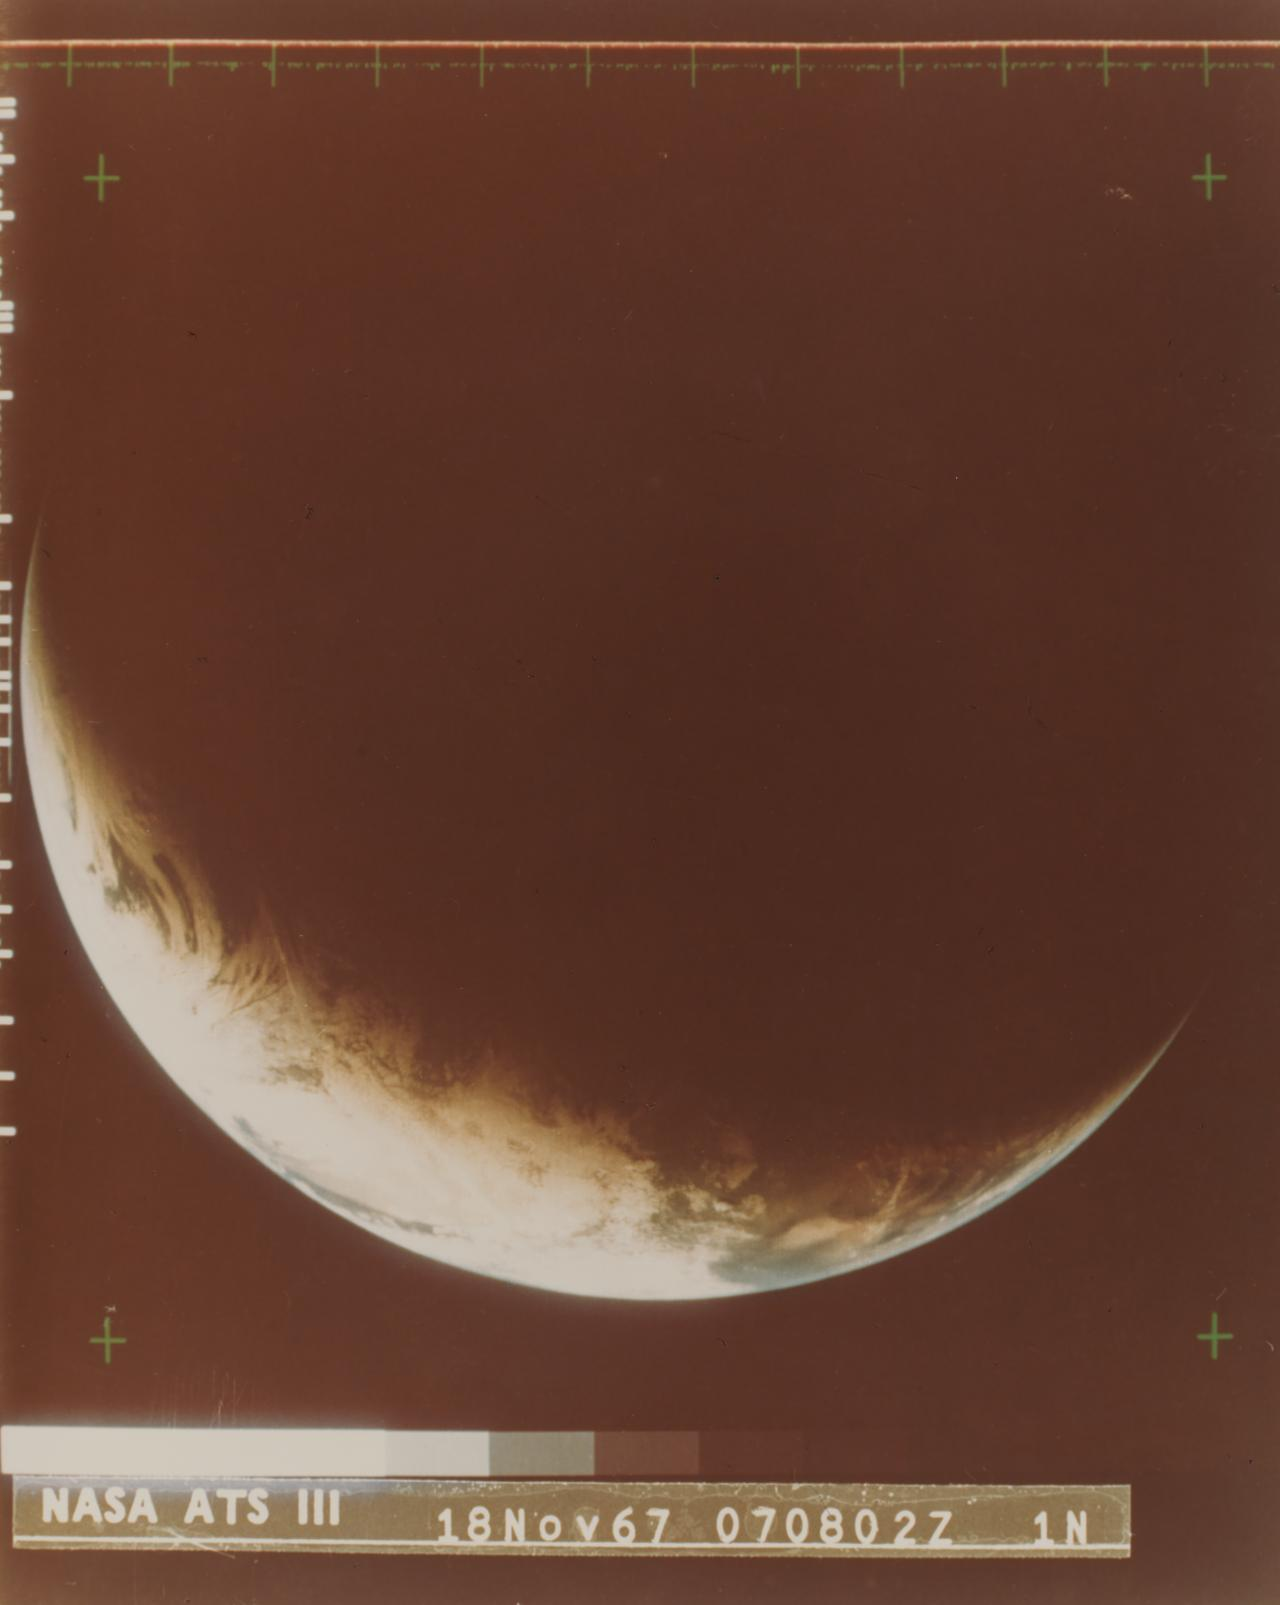 Earth: section of sunrise to sunset sequence, 18 November 1967